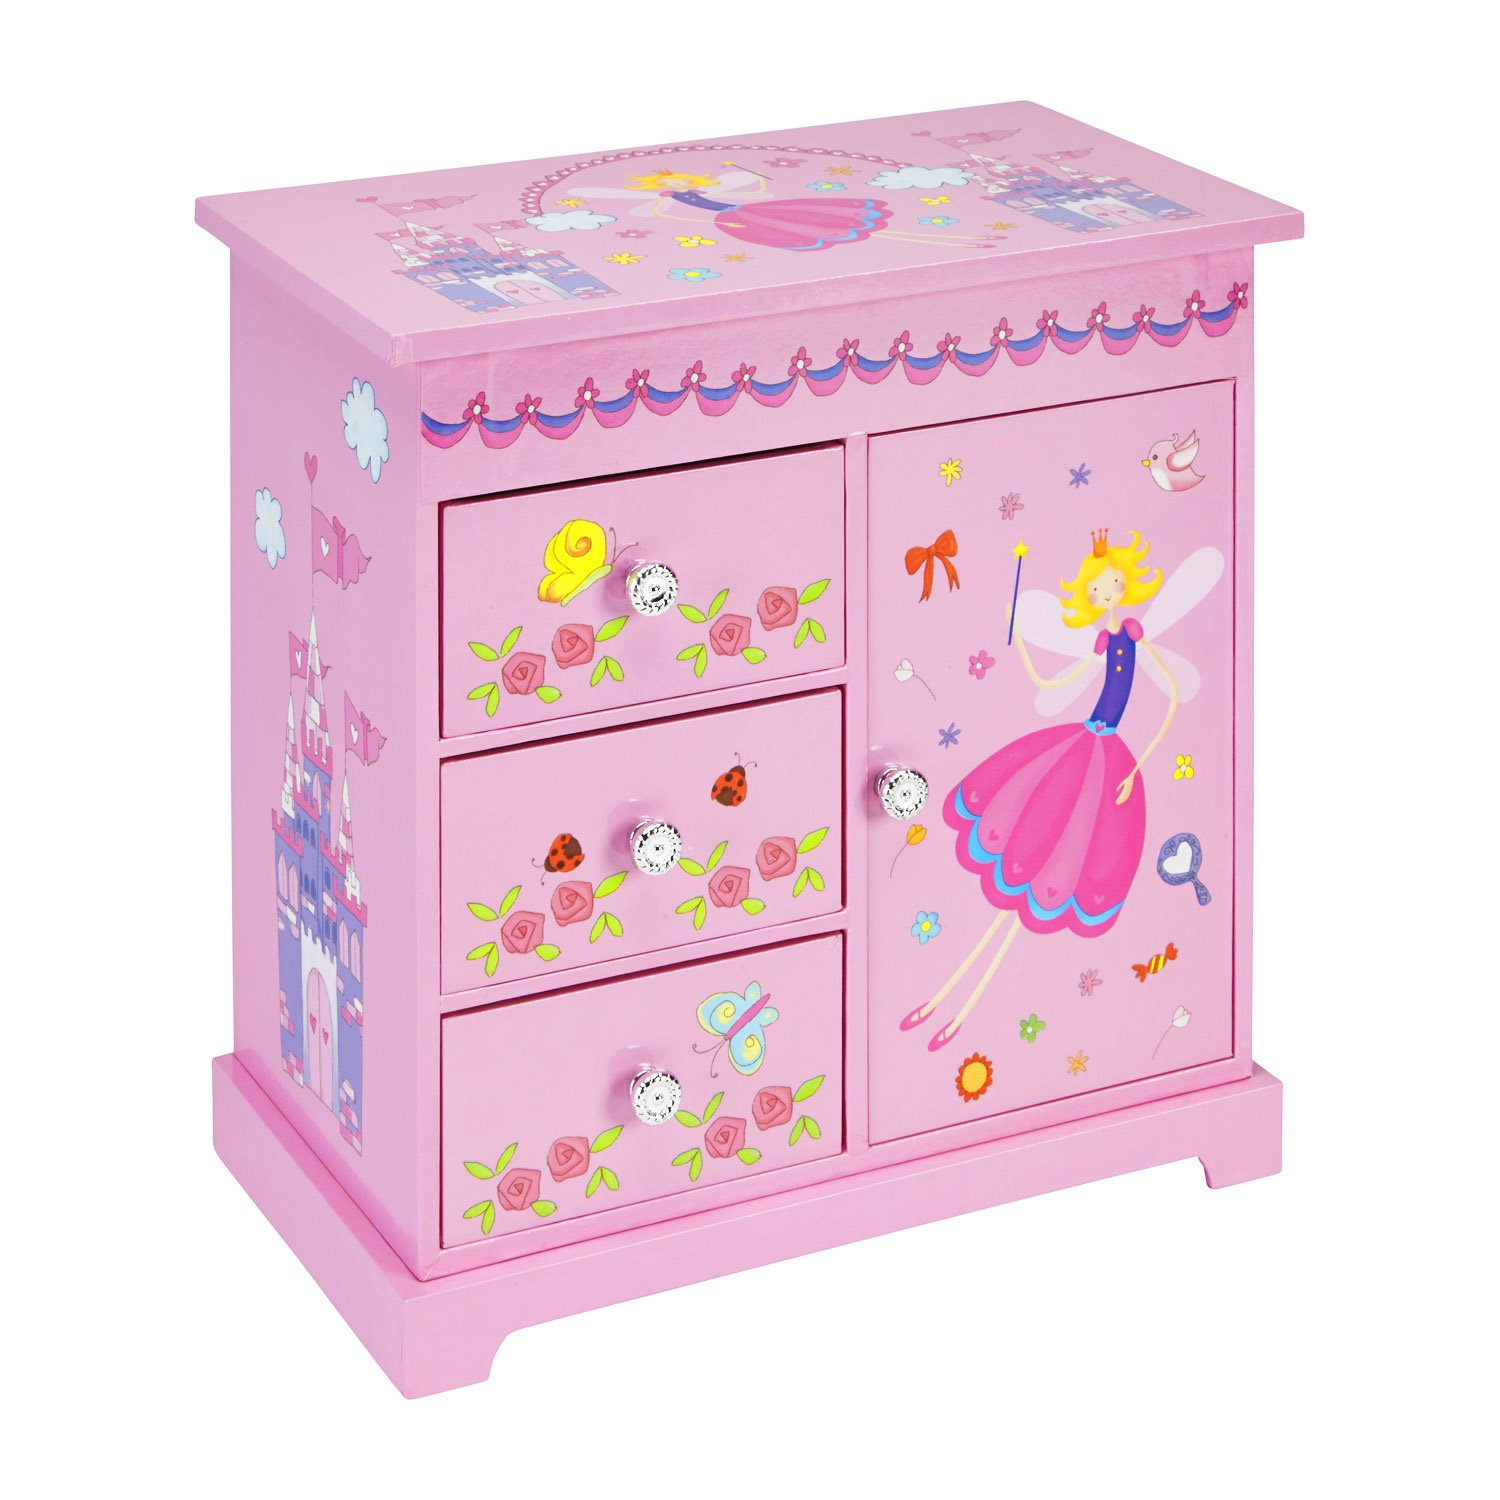 JewelKeeper Music Box with 3 Pullout Drawers, Fairy and Castle Design, Waltz of the Flowers Tune …